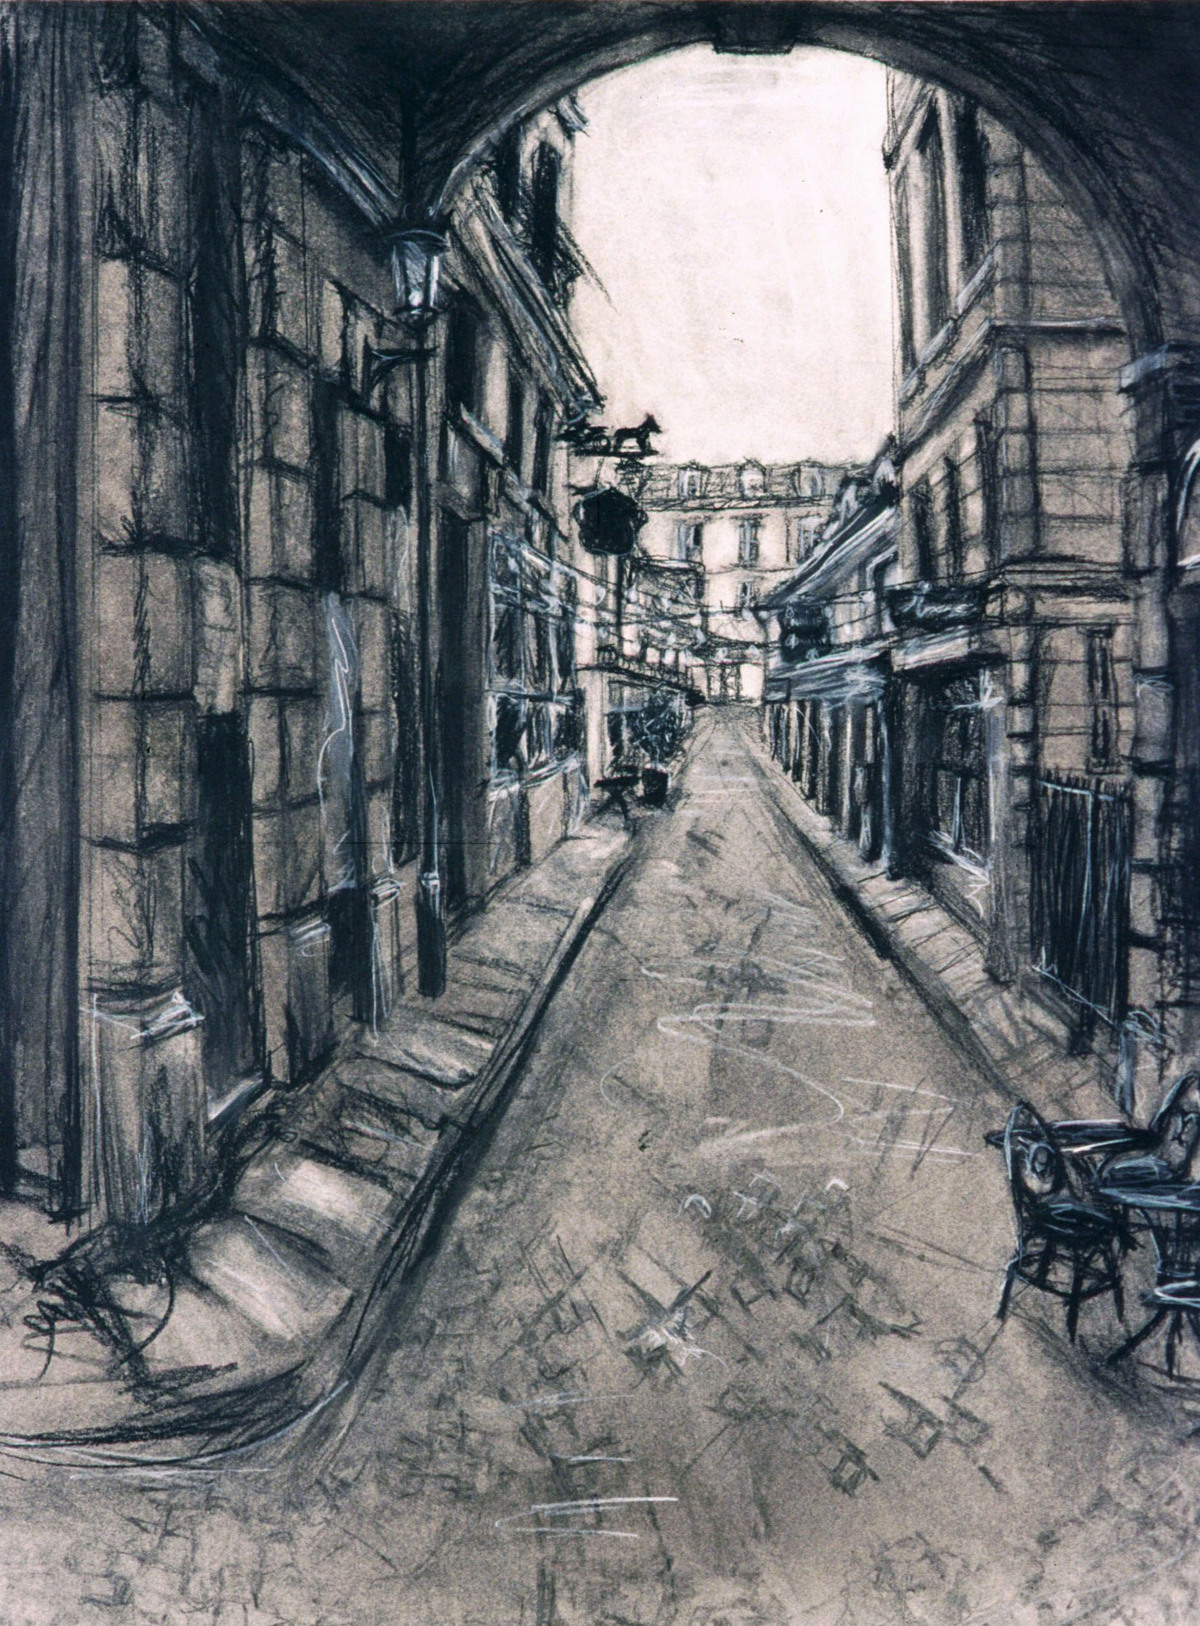 Street Scene in Paris: charcoal